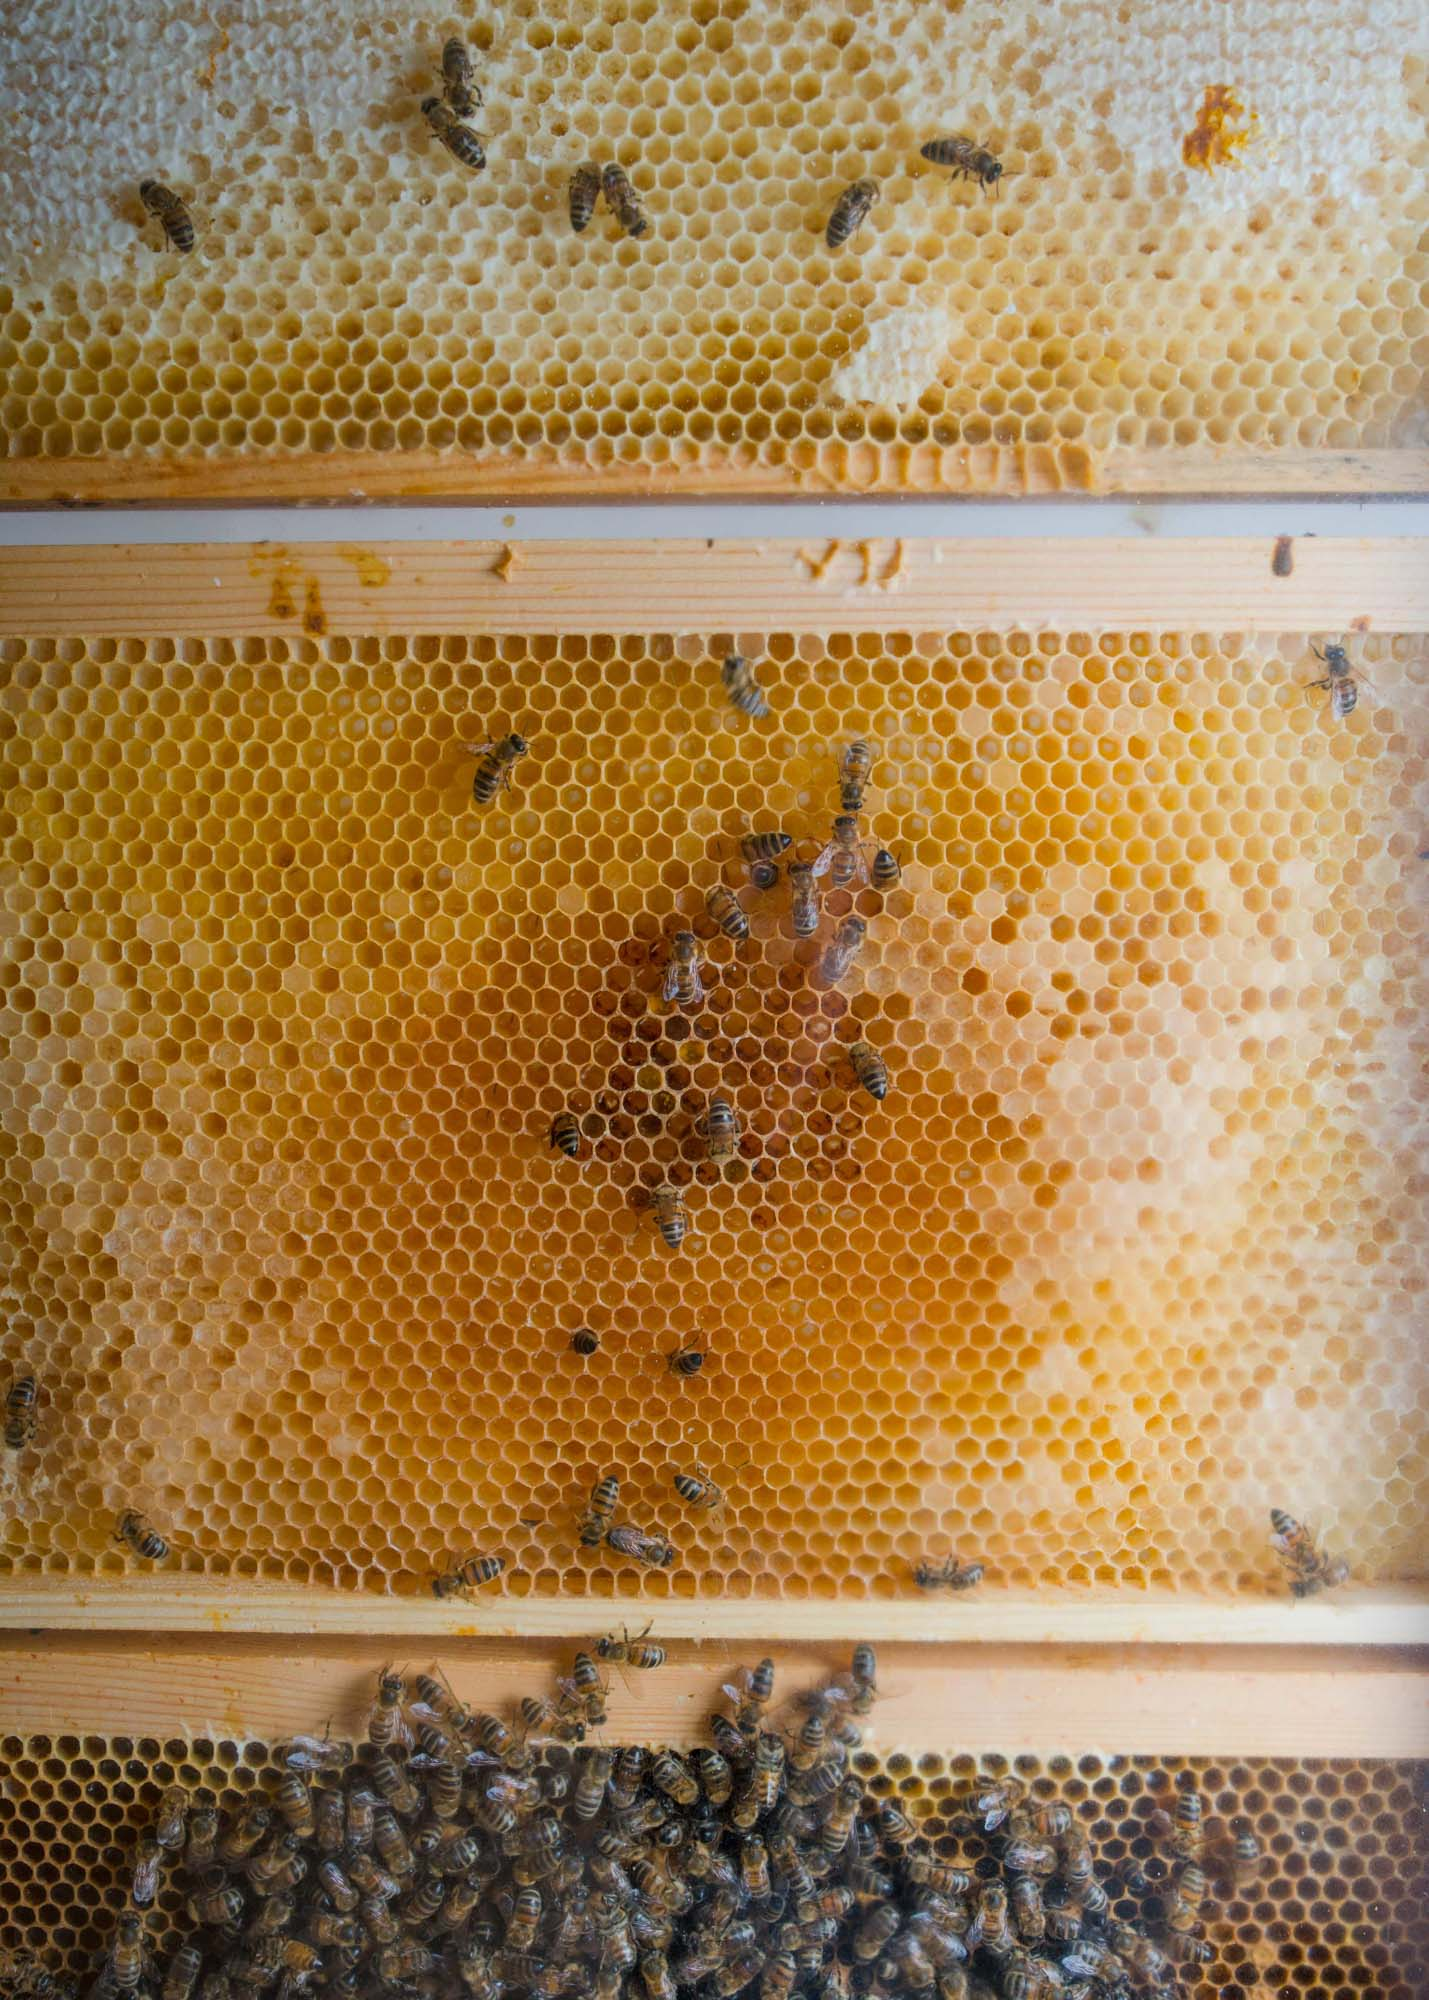 Interior detail of the honey bee hive